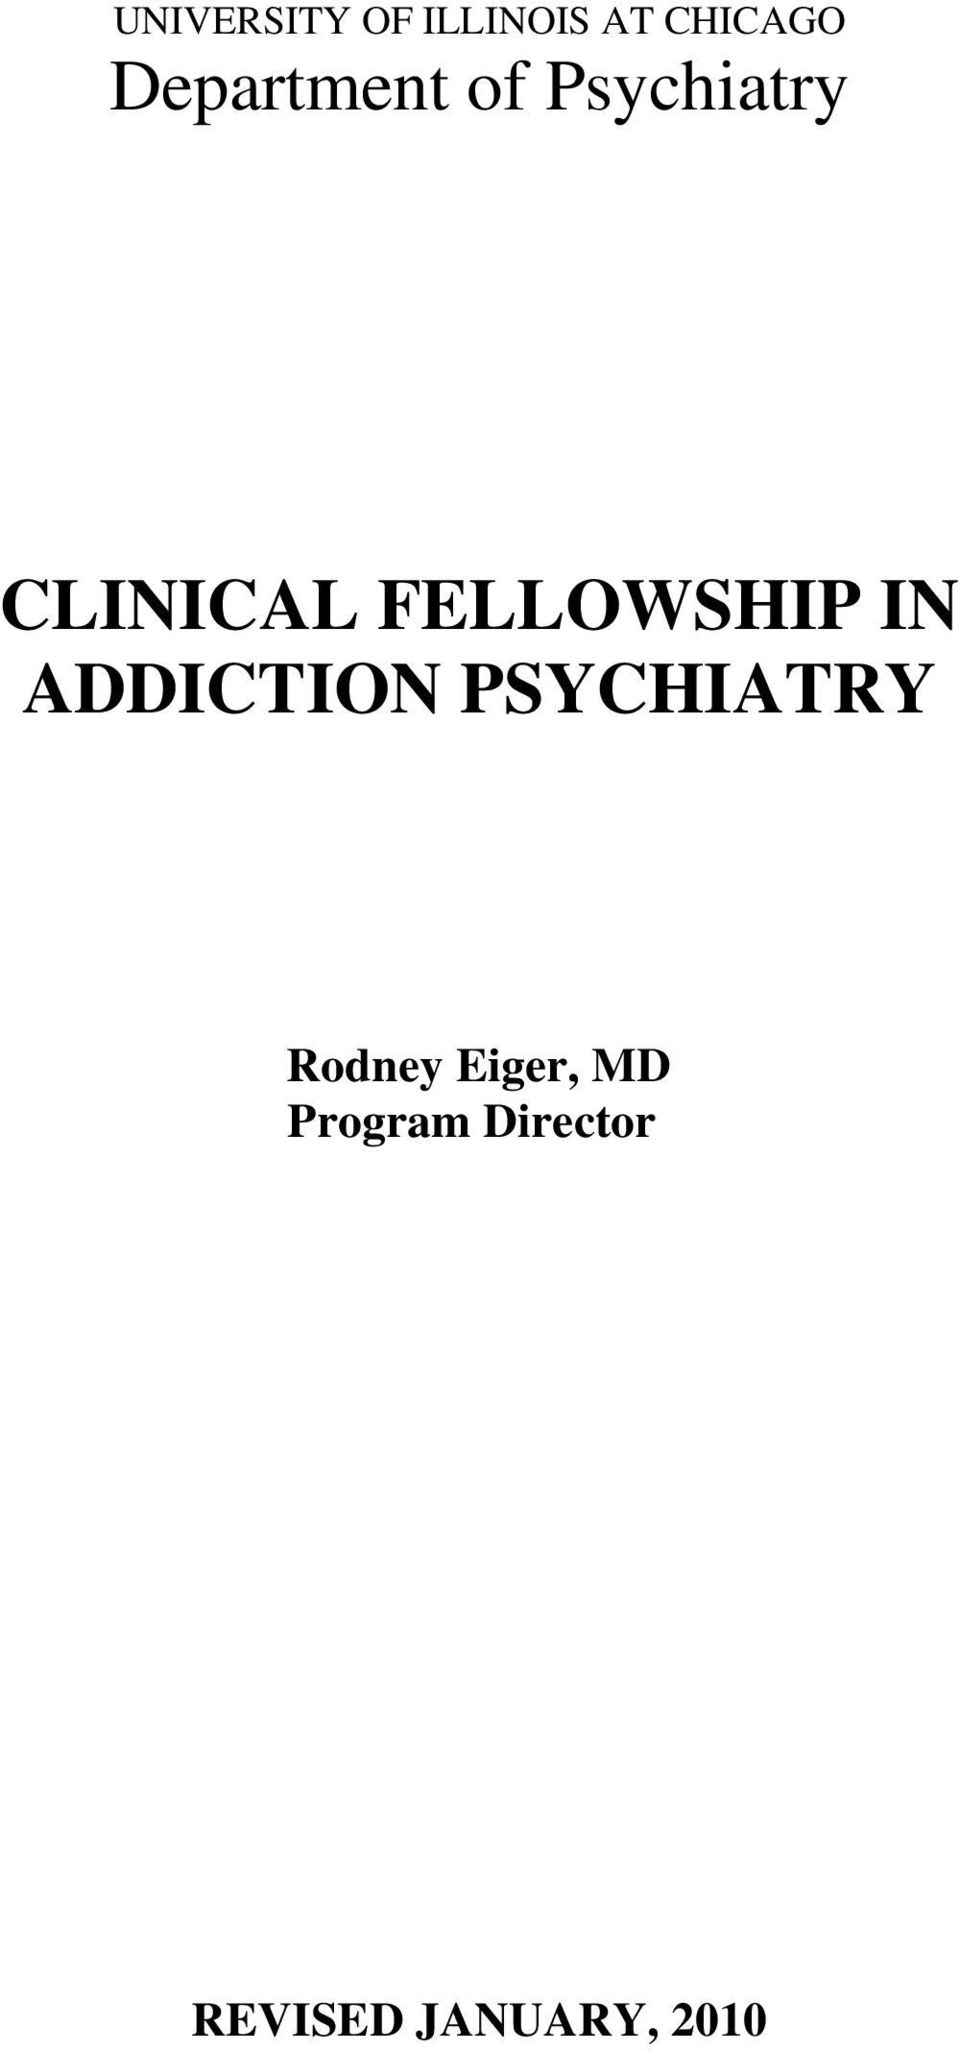 FELLOWSHIP IN ADDICTION PSYCHIATRY